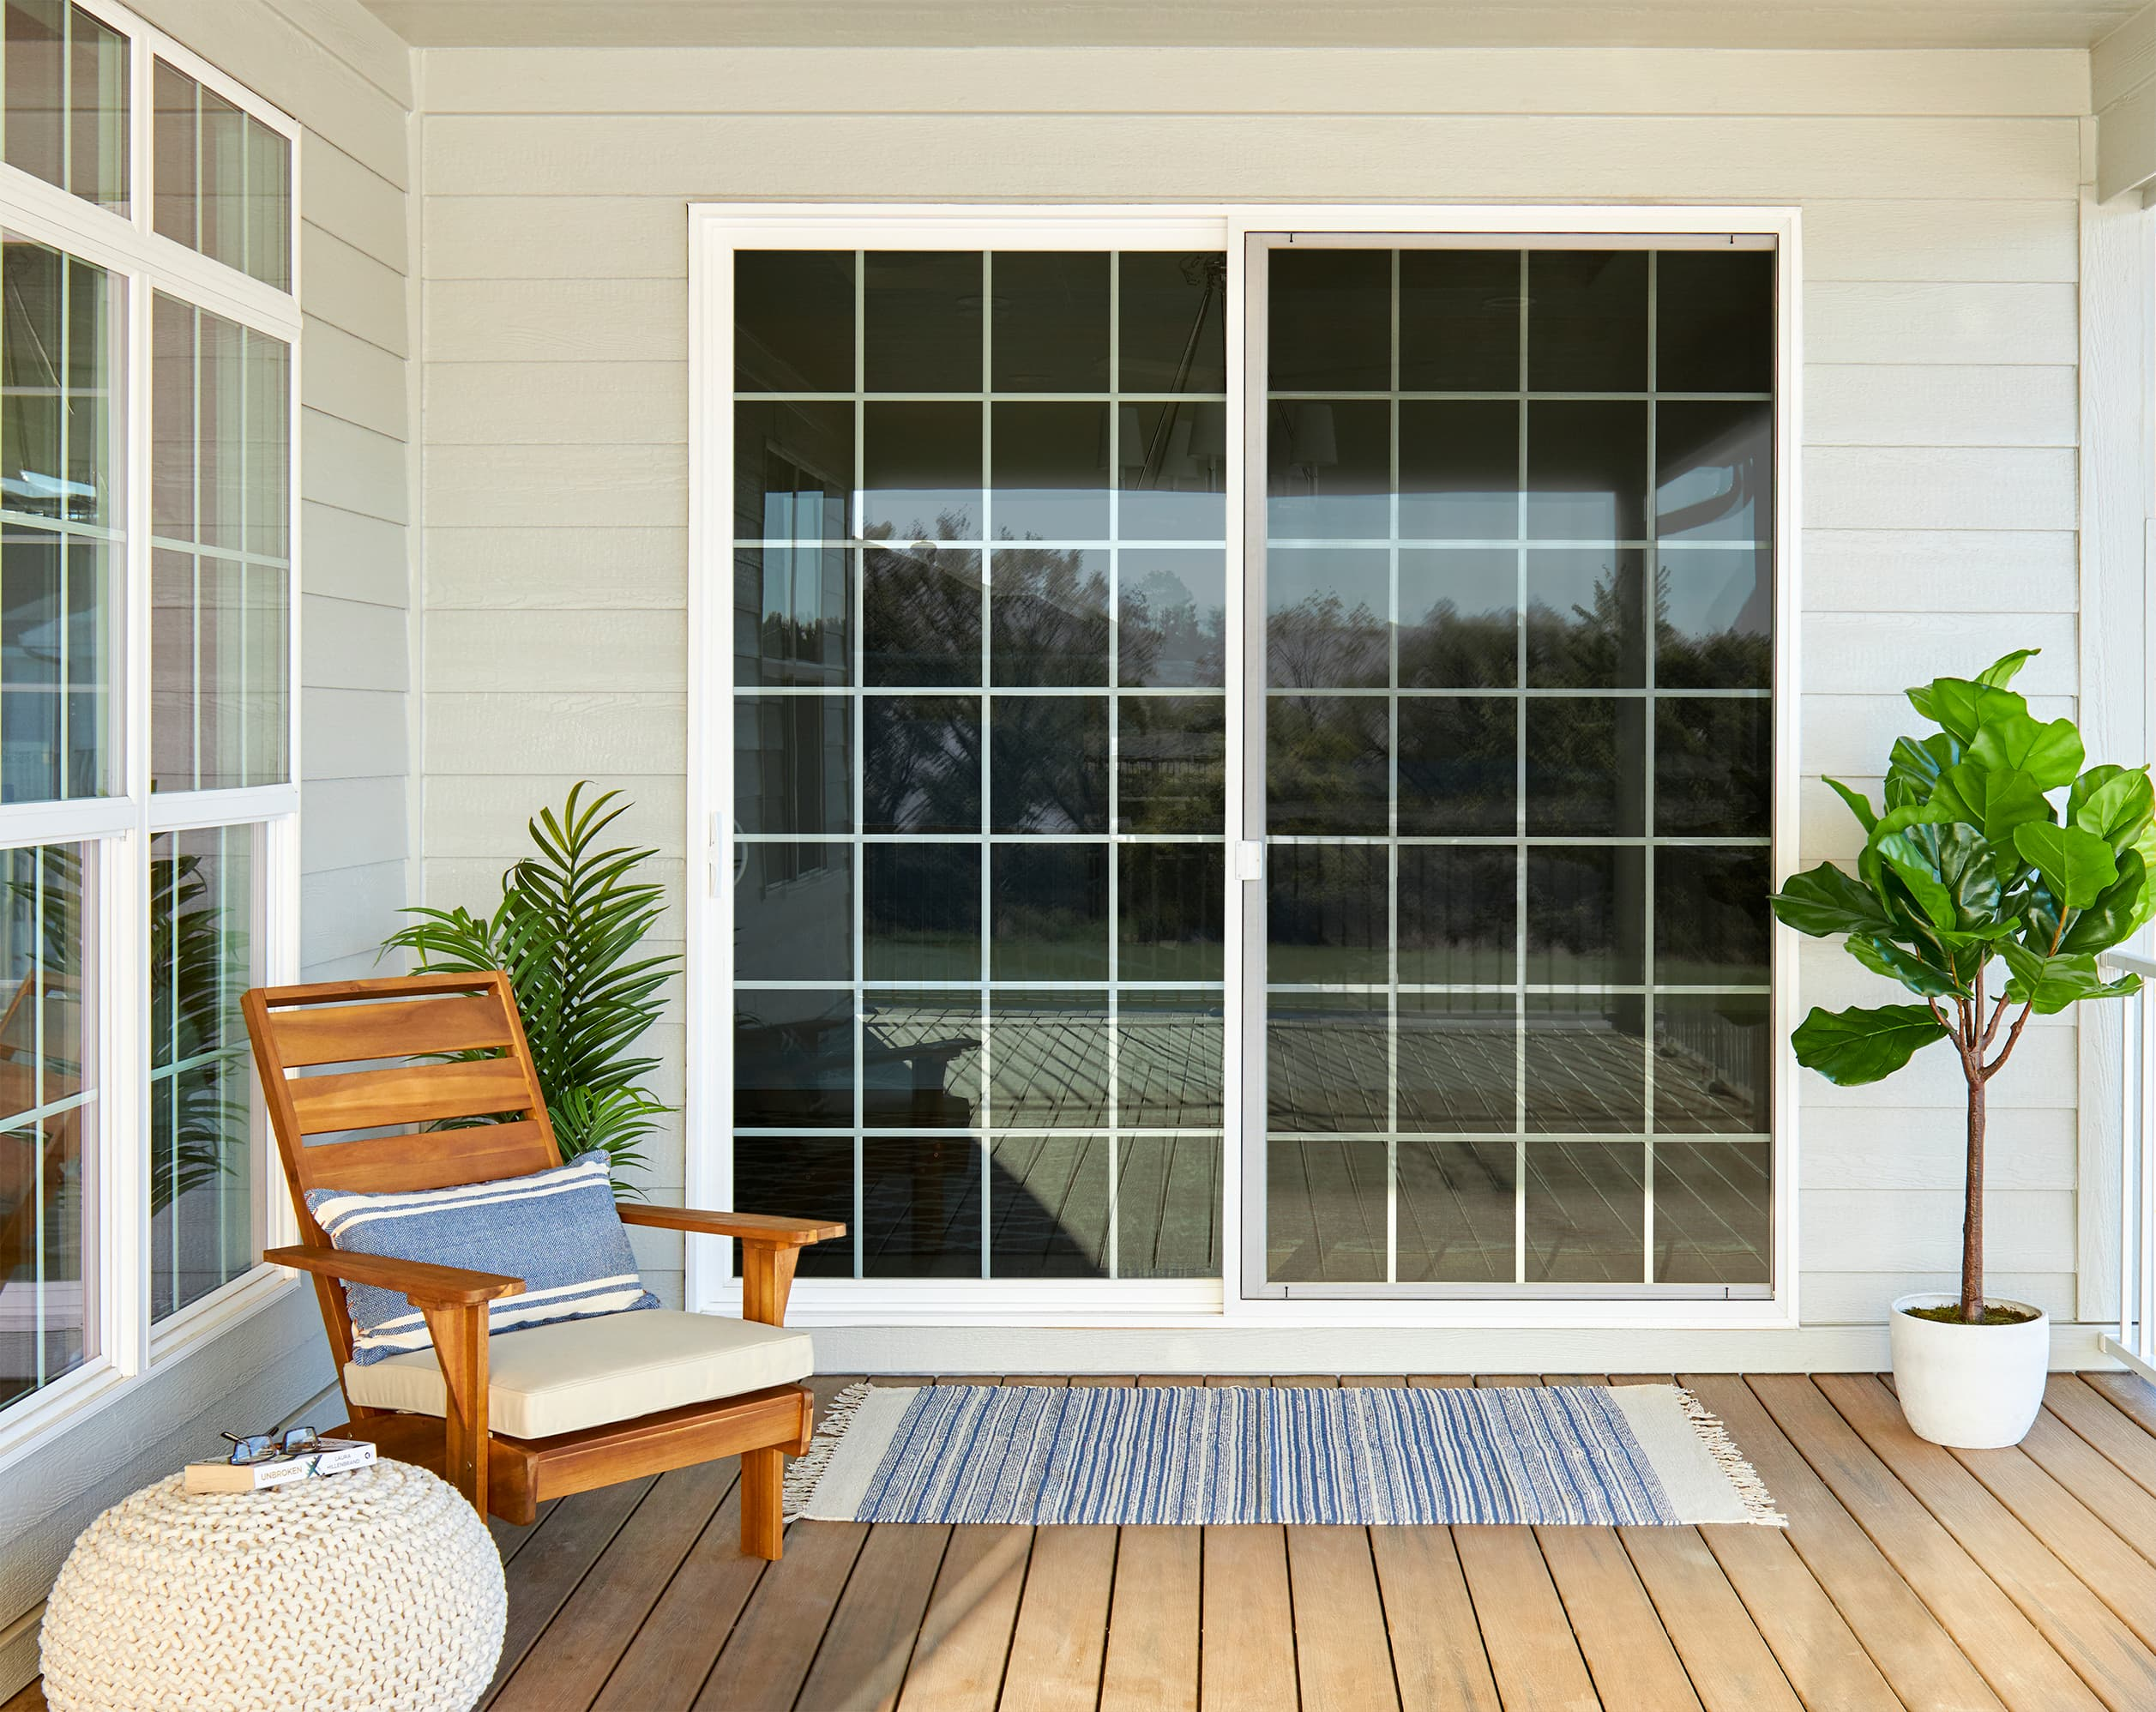 White sliding glass patio doors with traditional grille pattern on contemporary patio.